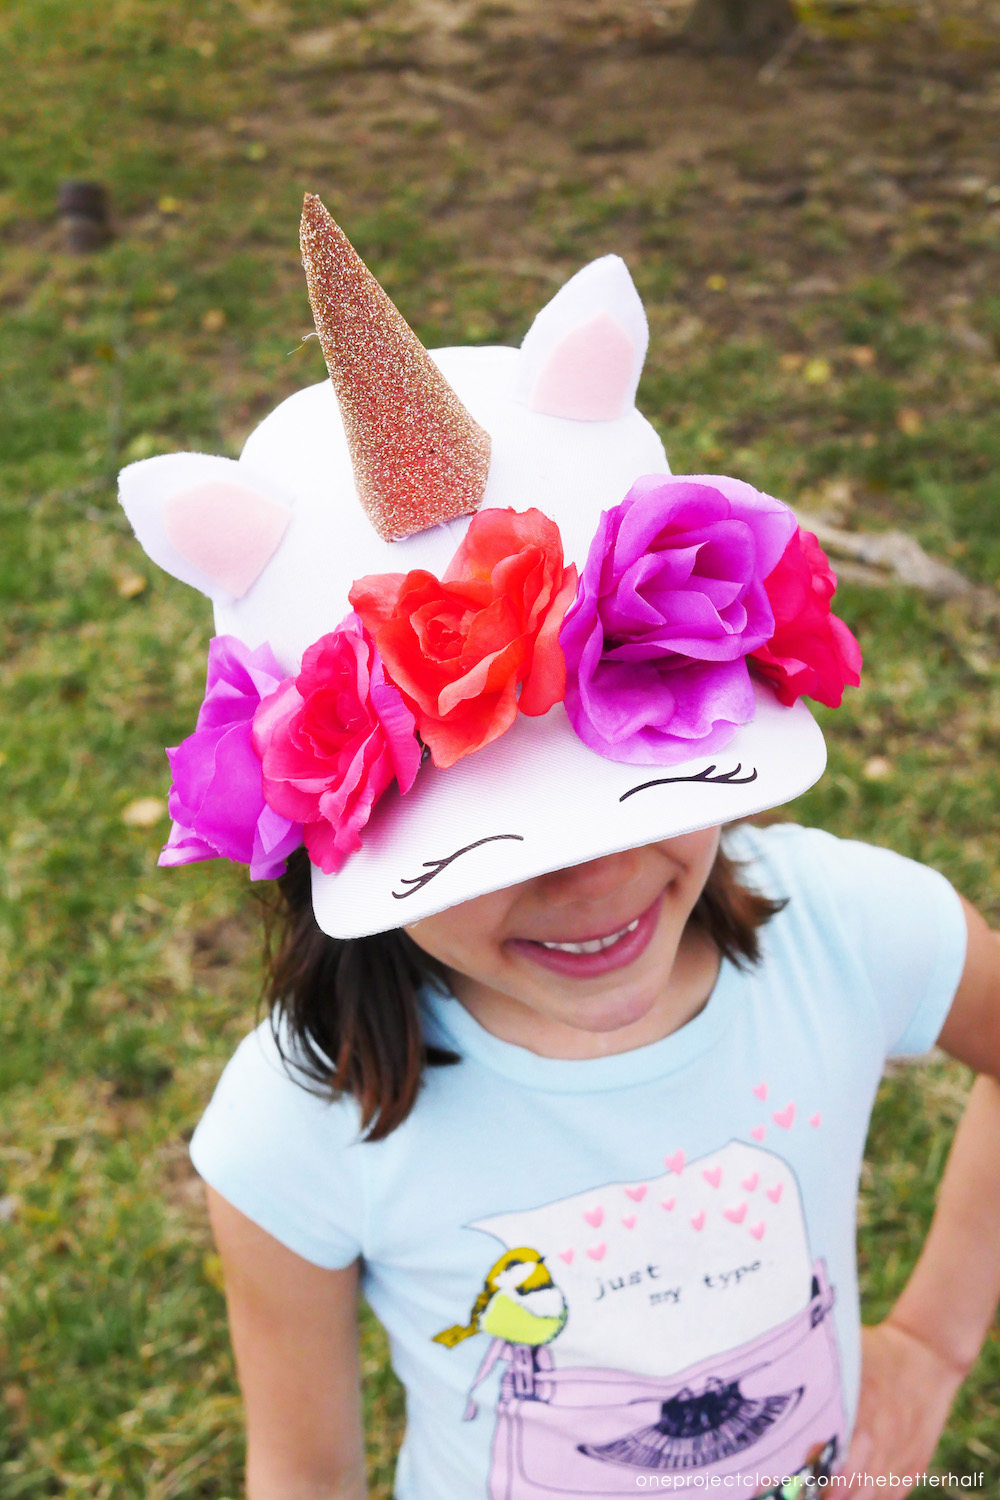 10 Spring Dollar Store Crafts #unicorn #crafts #diy #dollarstore